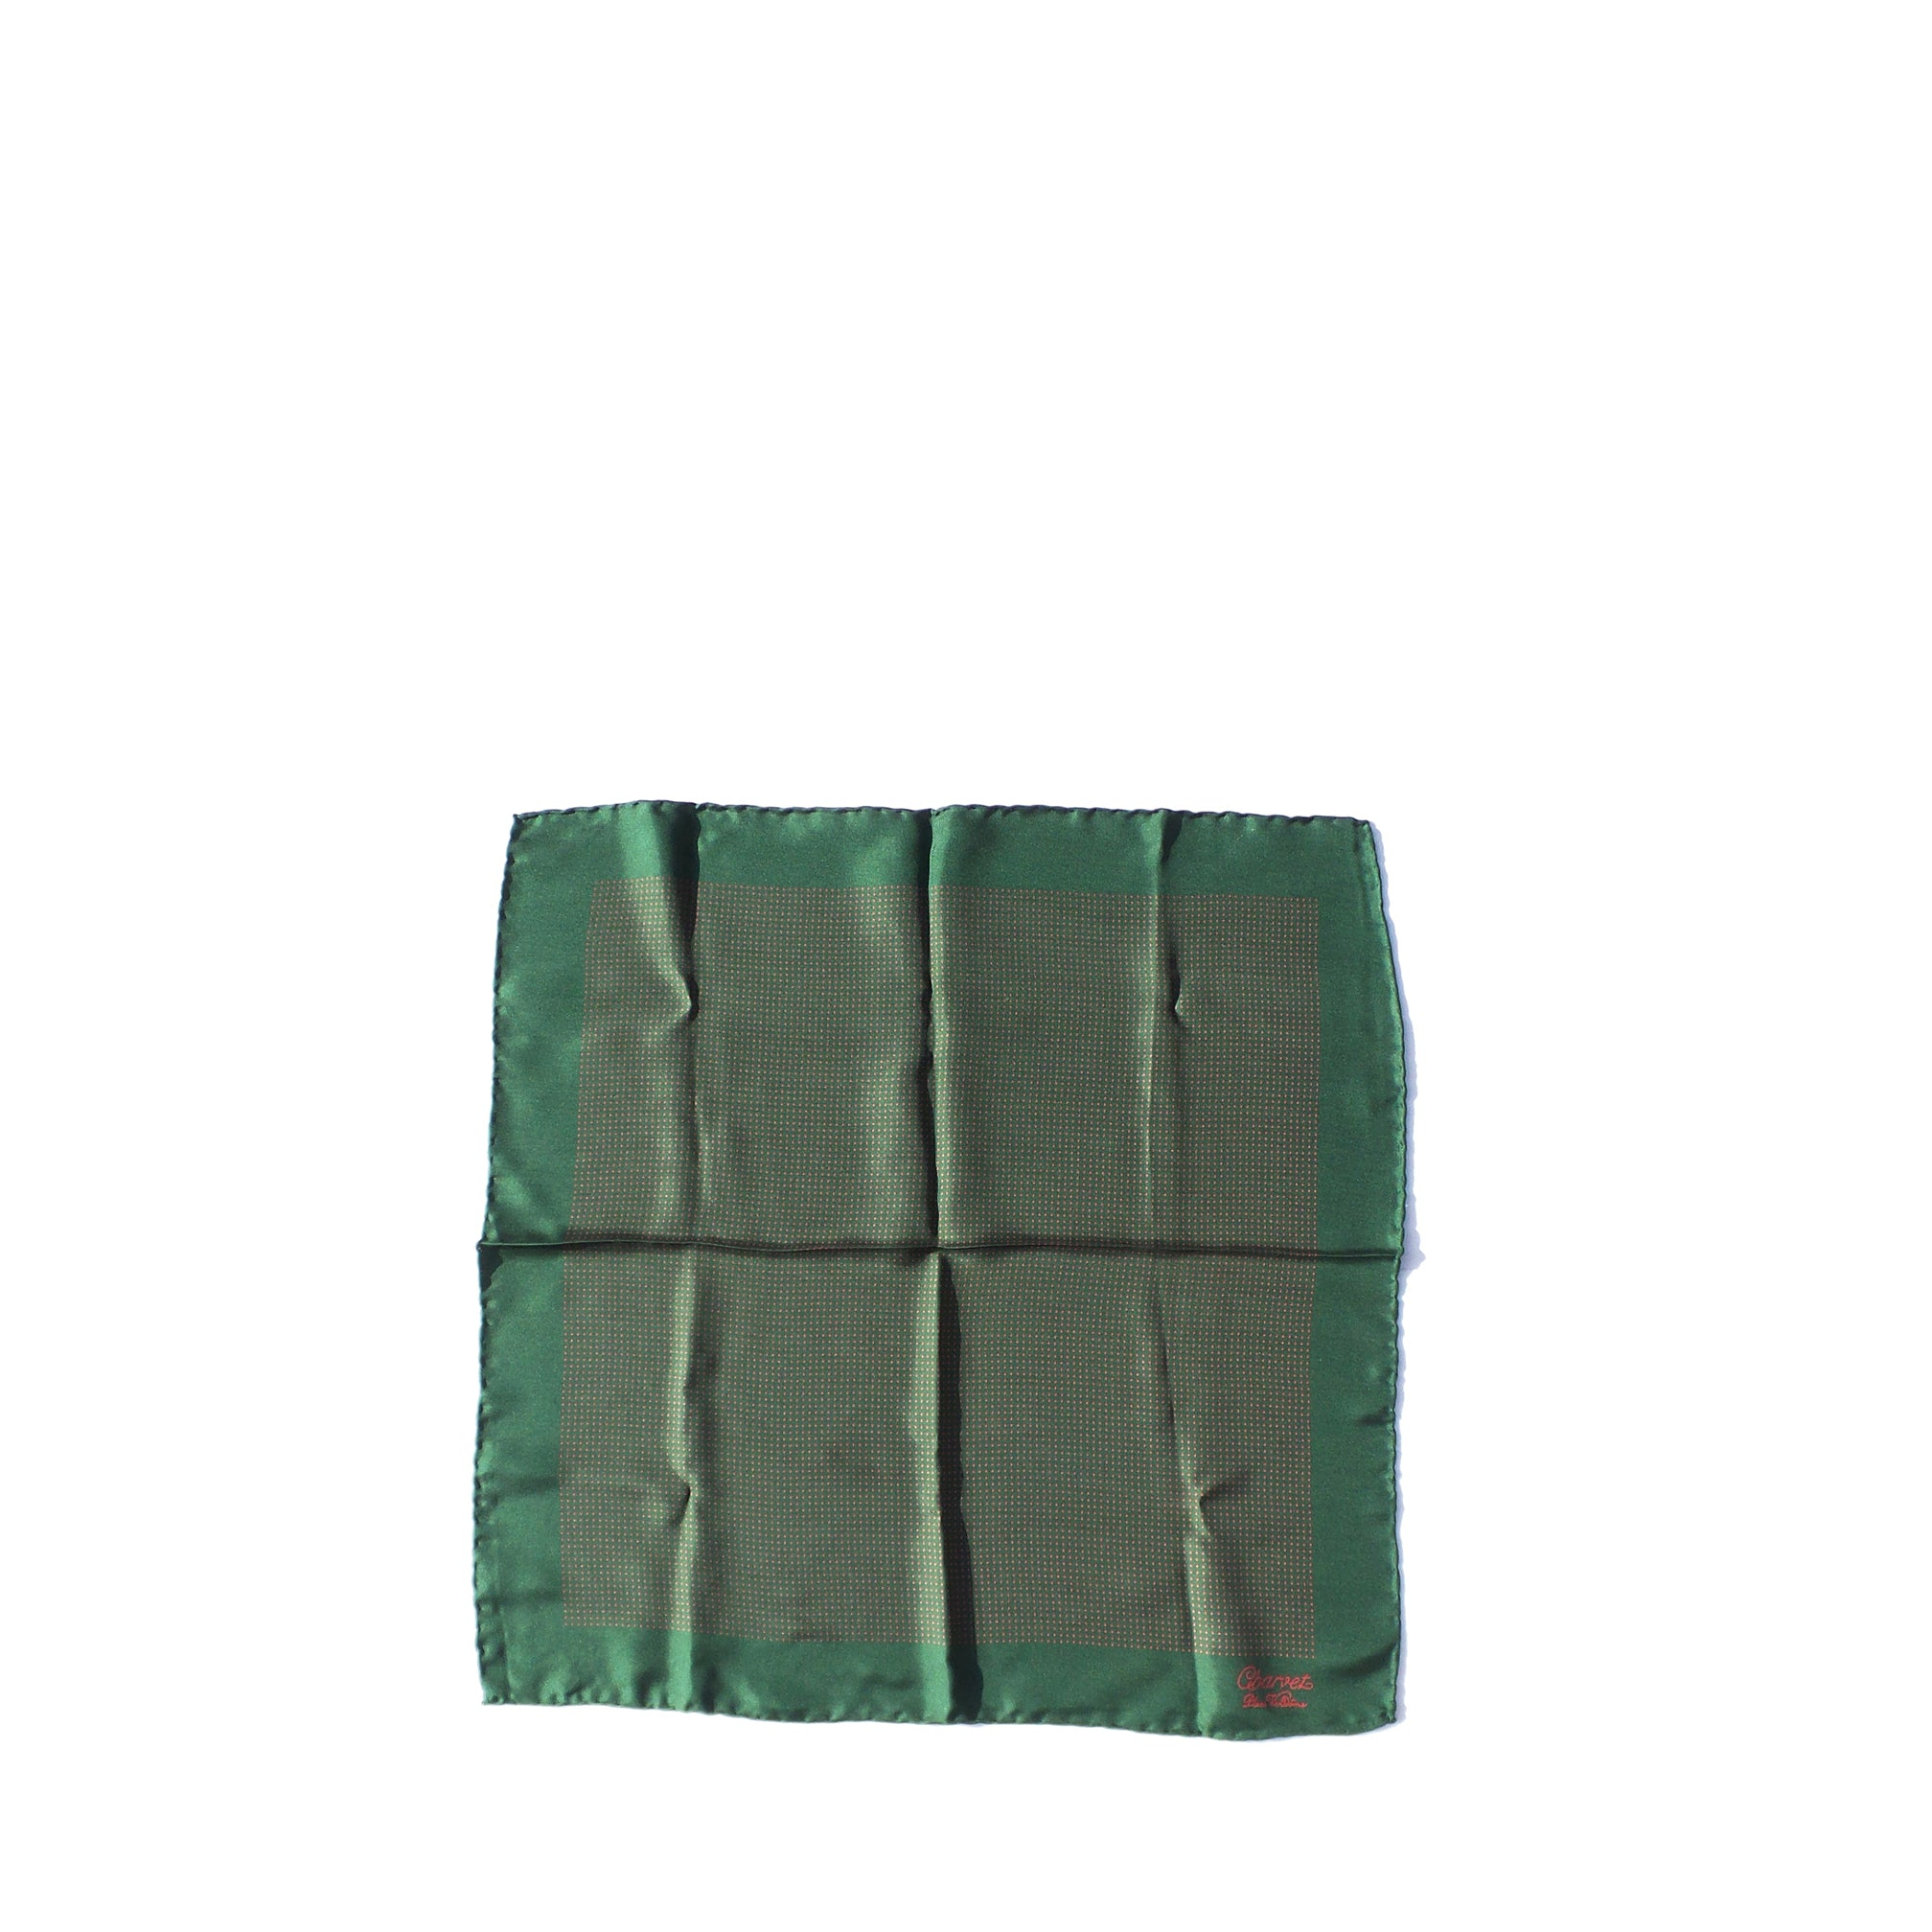 d3b7fc1721c3 'Sold' CHARVET Place Vendome Green Red Polka Dot Silk Twill Pocket Squ –  Encore Resale.com